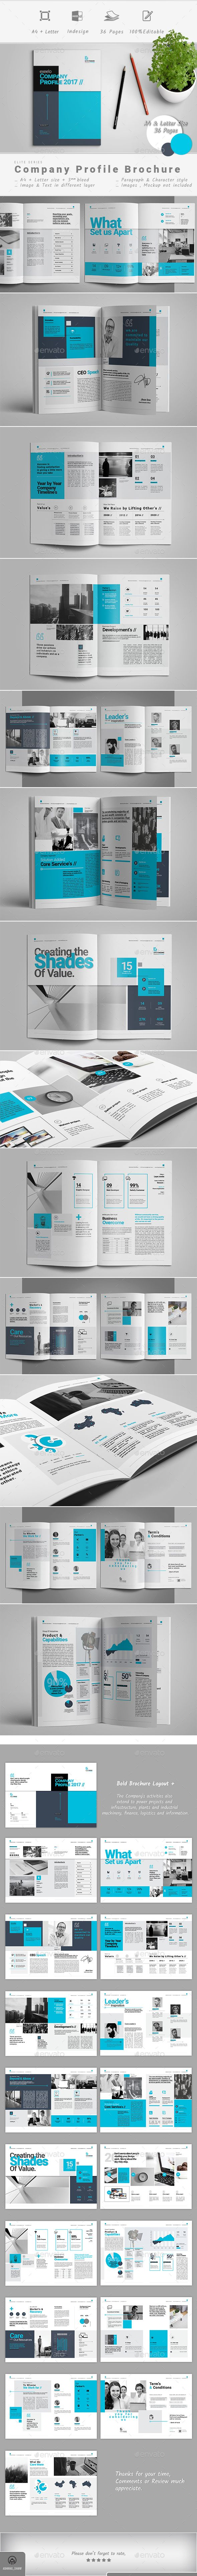 Company Profile Design Template - Corporate Brochures Design Template InDesign INDD. Download here: https://graphicriver.net/item/company-profile/19361735?ref=yinkira